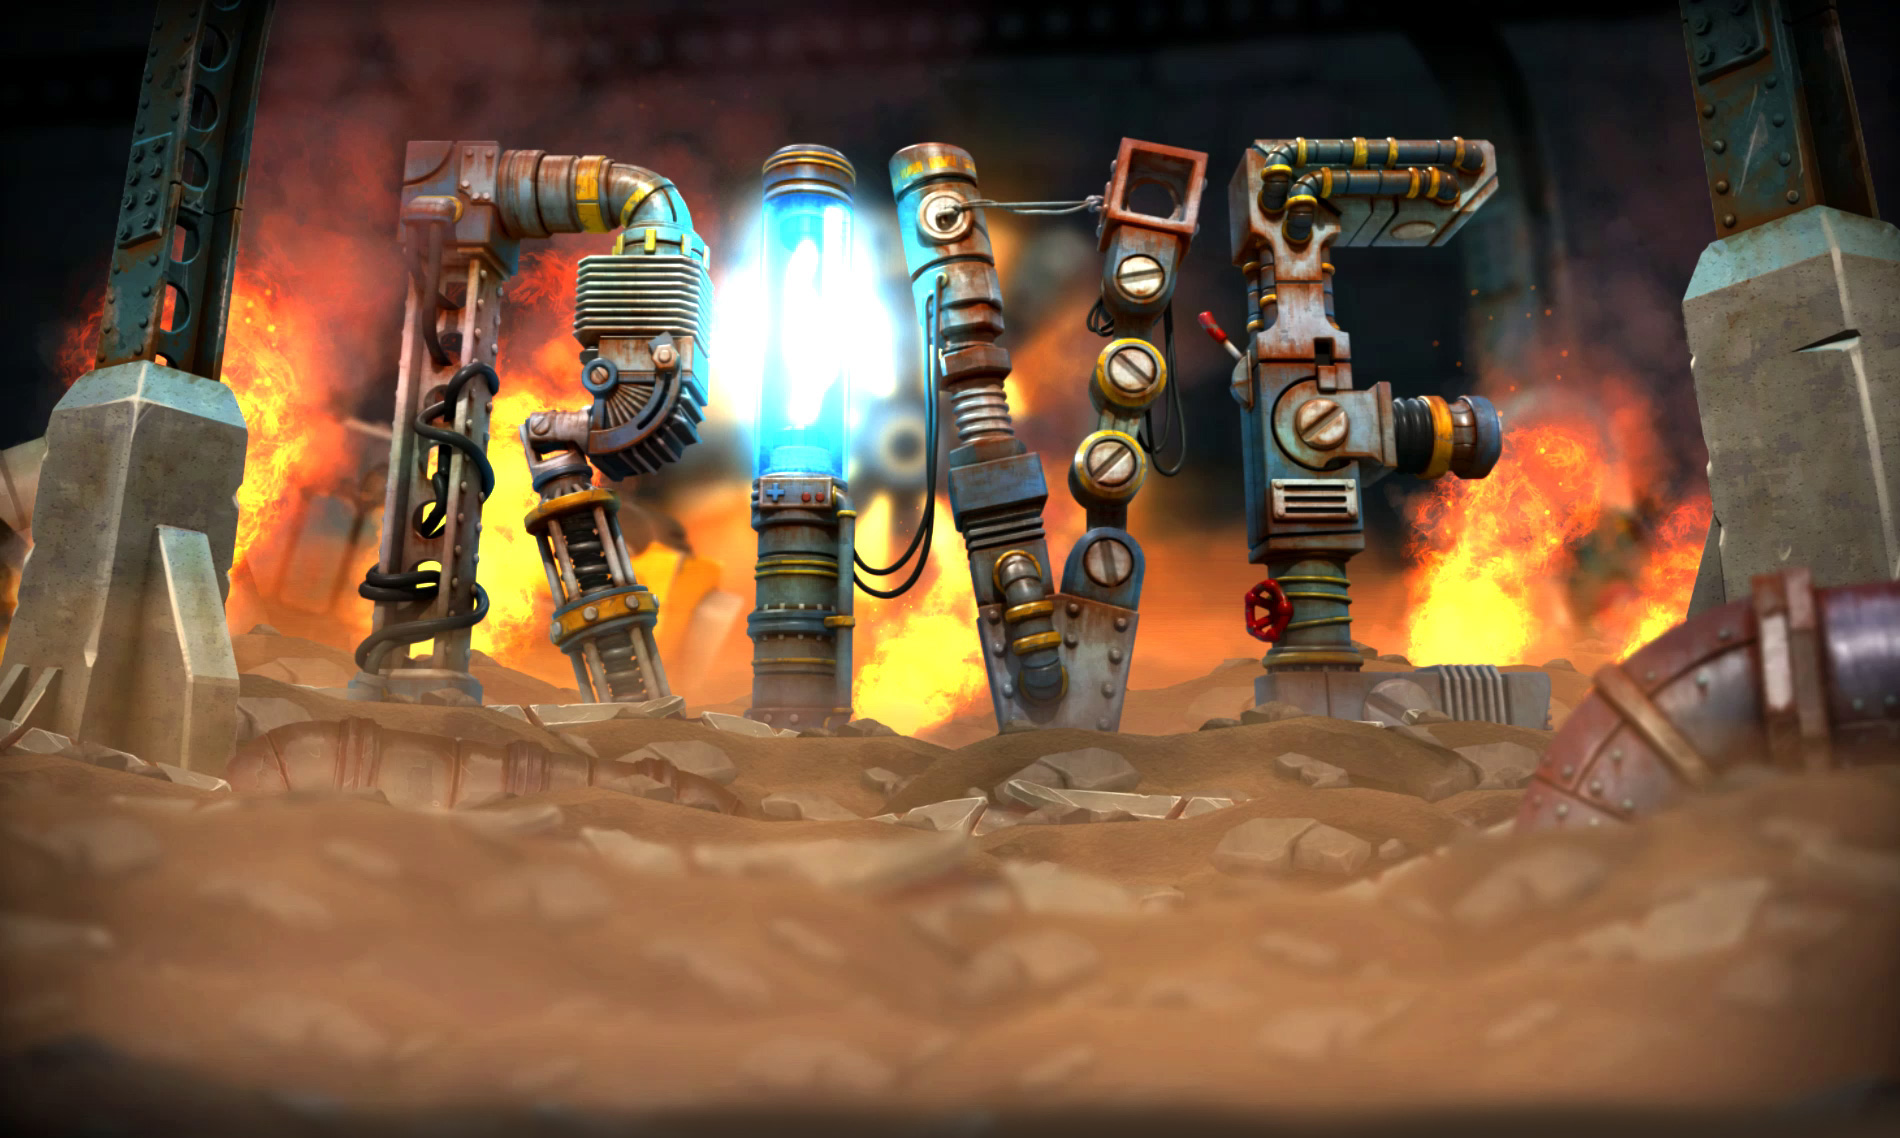 RIVE - Wreck! Hack! Die! Retry! Gameplay and Review